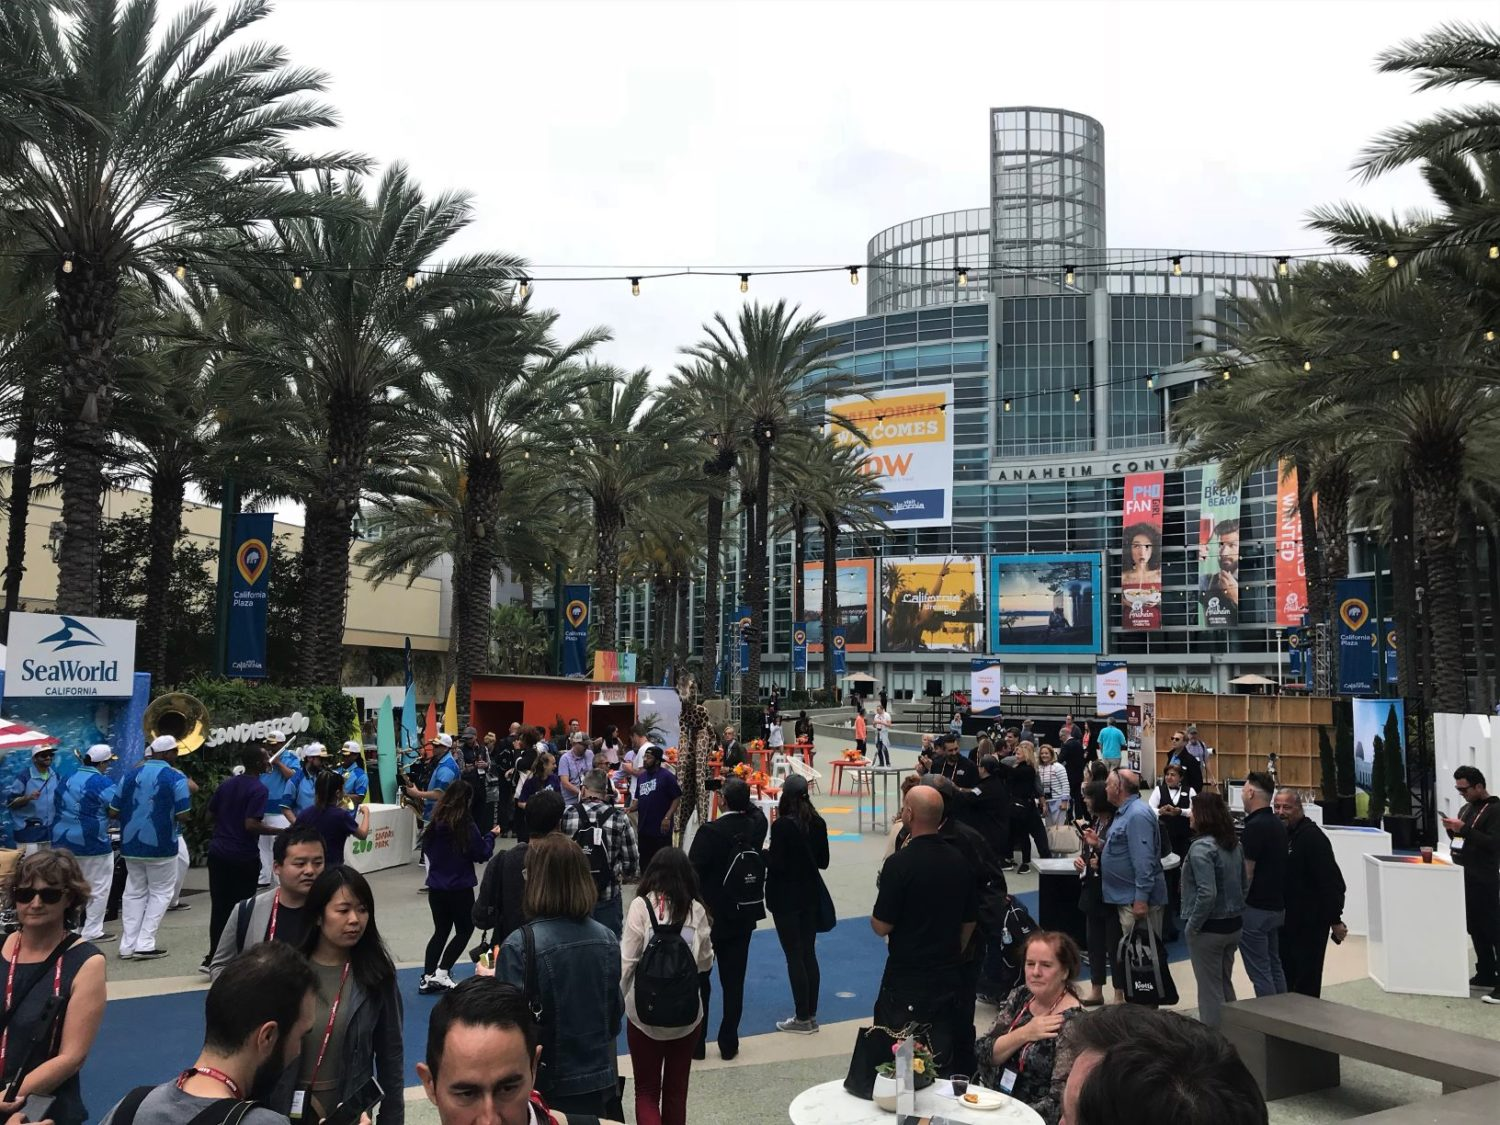 Vista do Anaheim Convention Center, onde aconteceu o IPW 2019